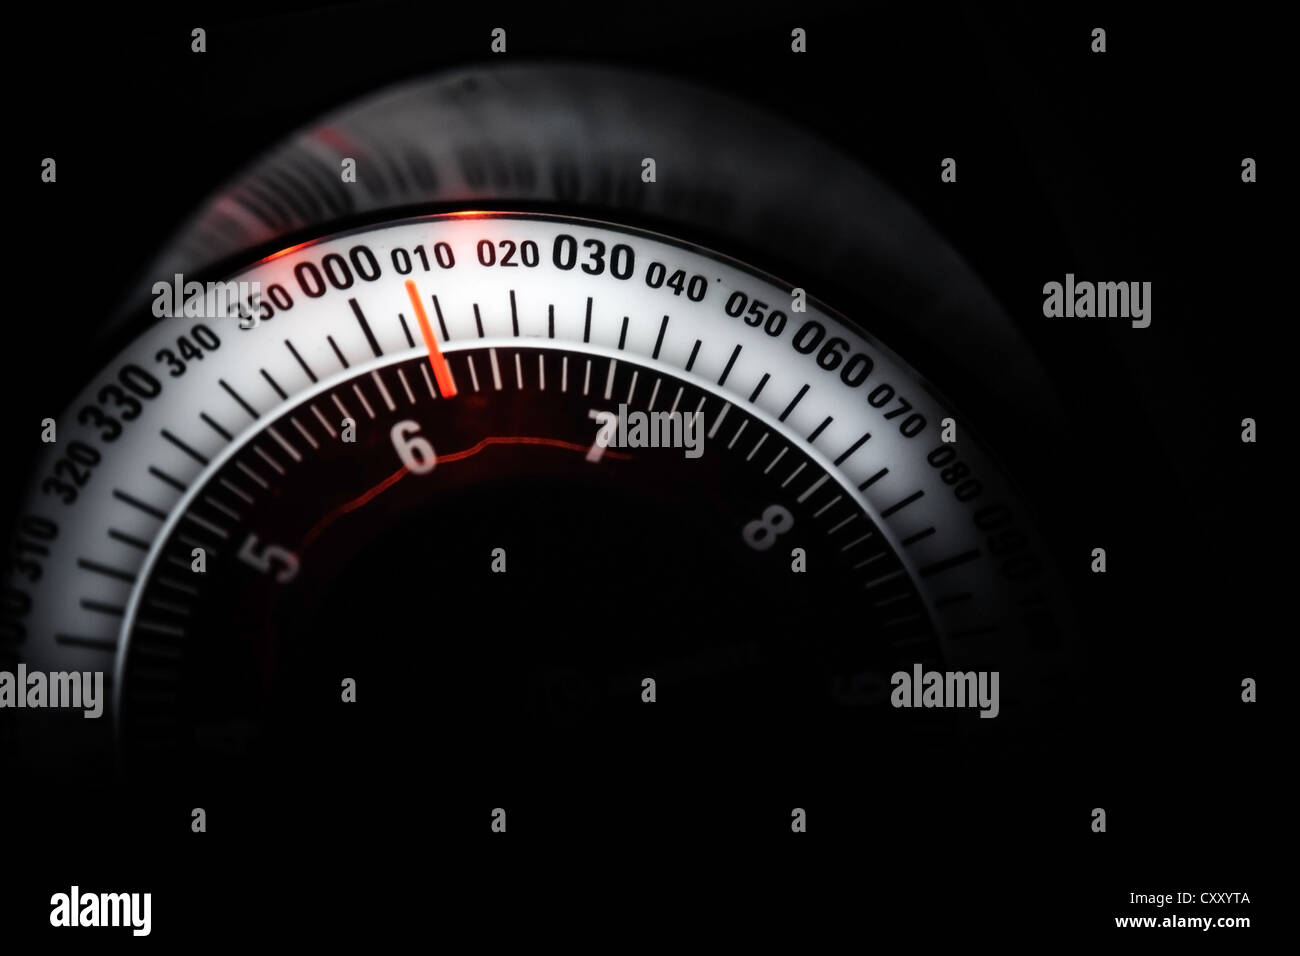 Lighted navigation indicator scale, selective focus - Stock Image